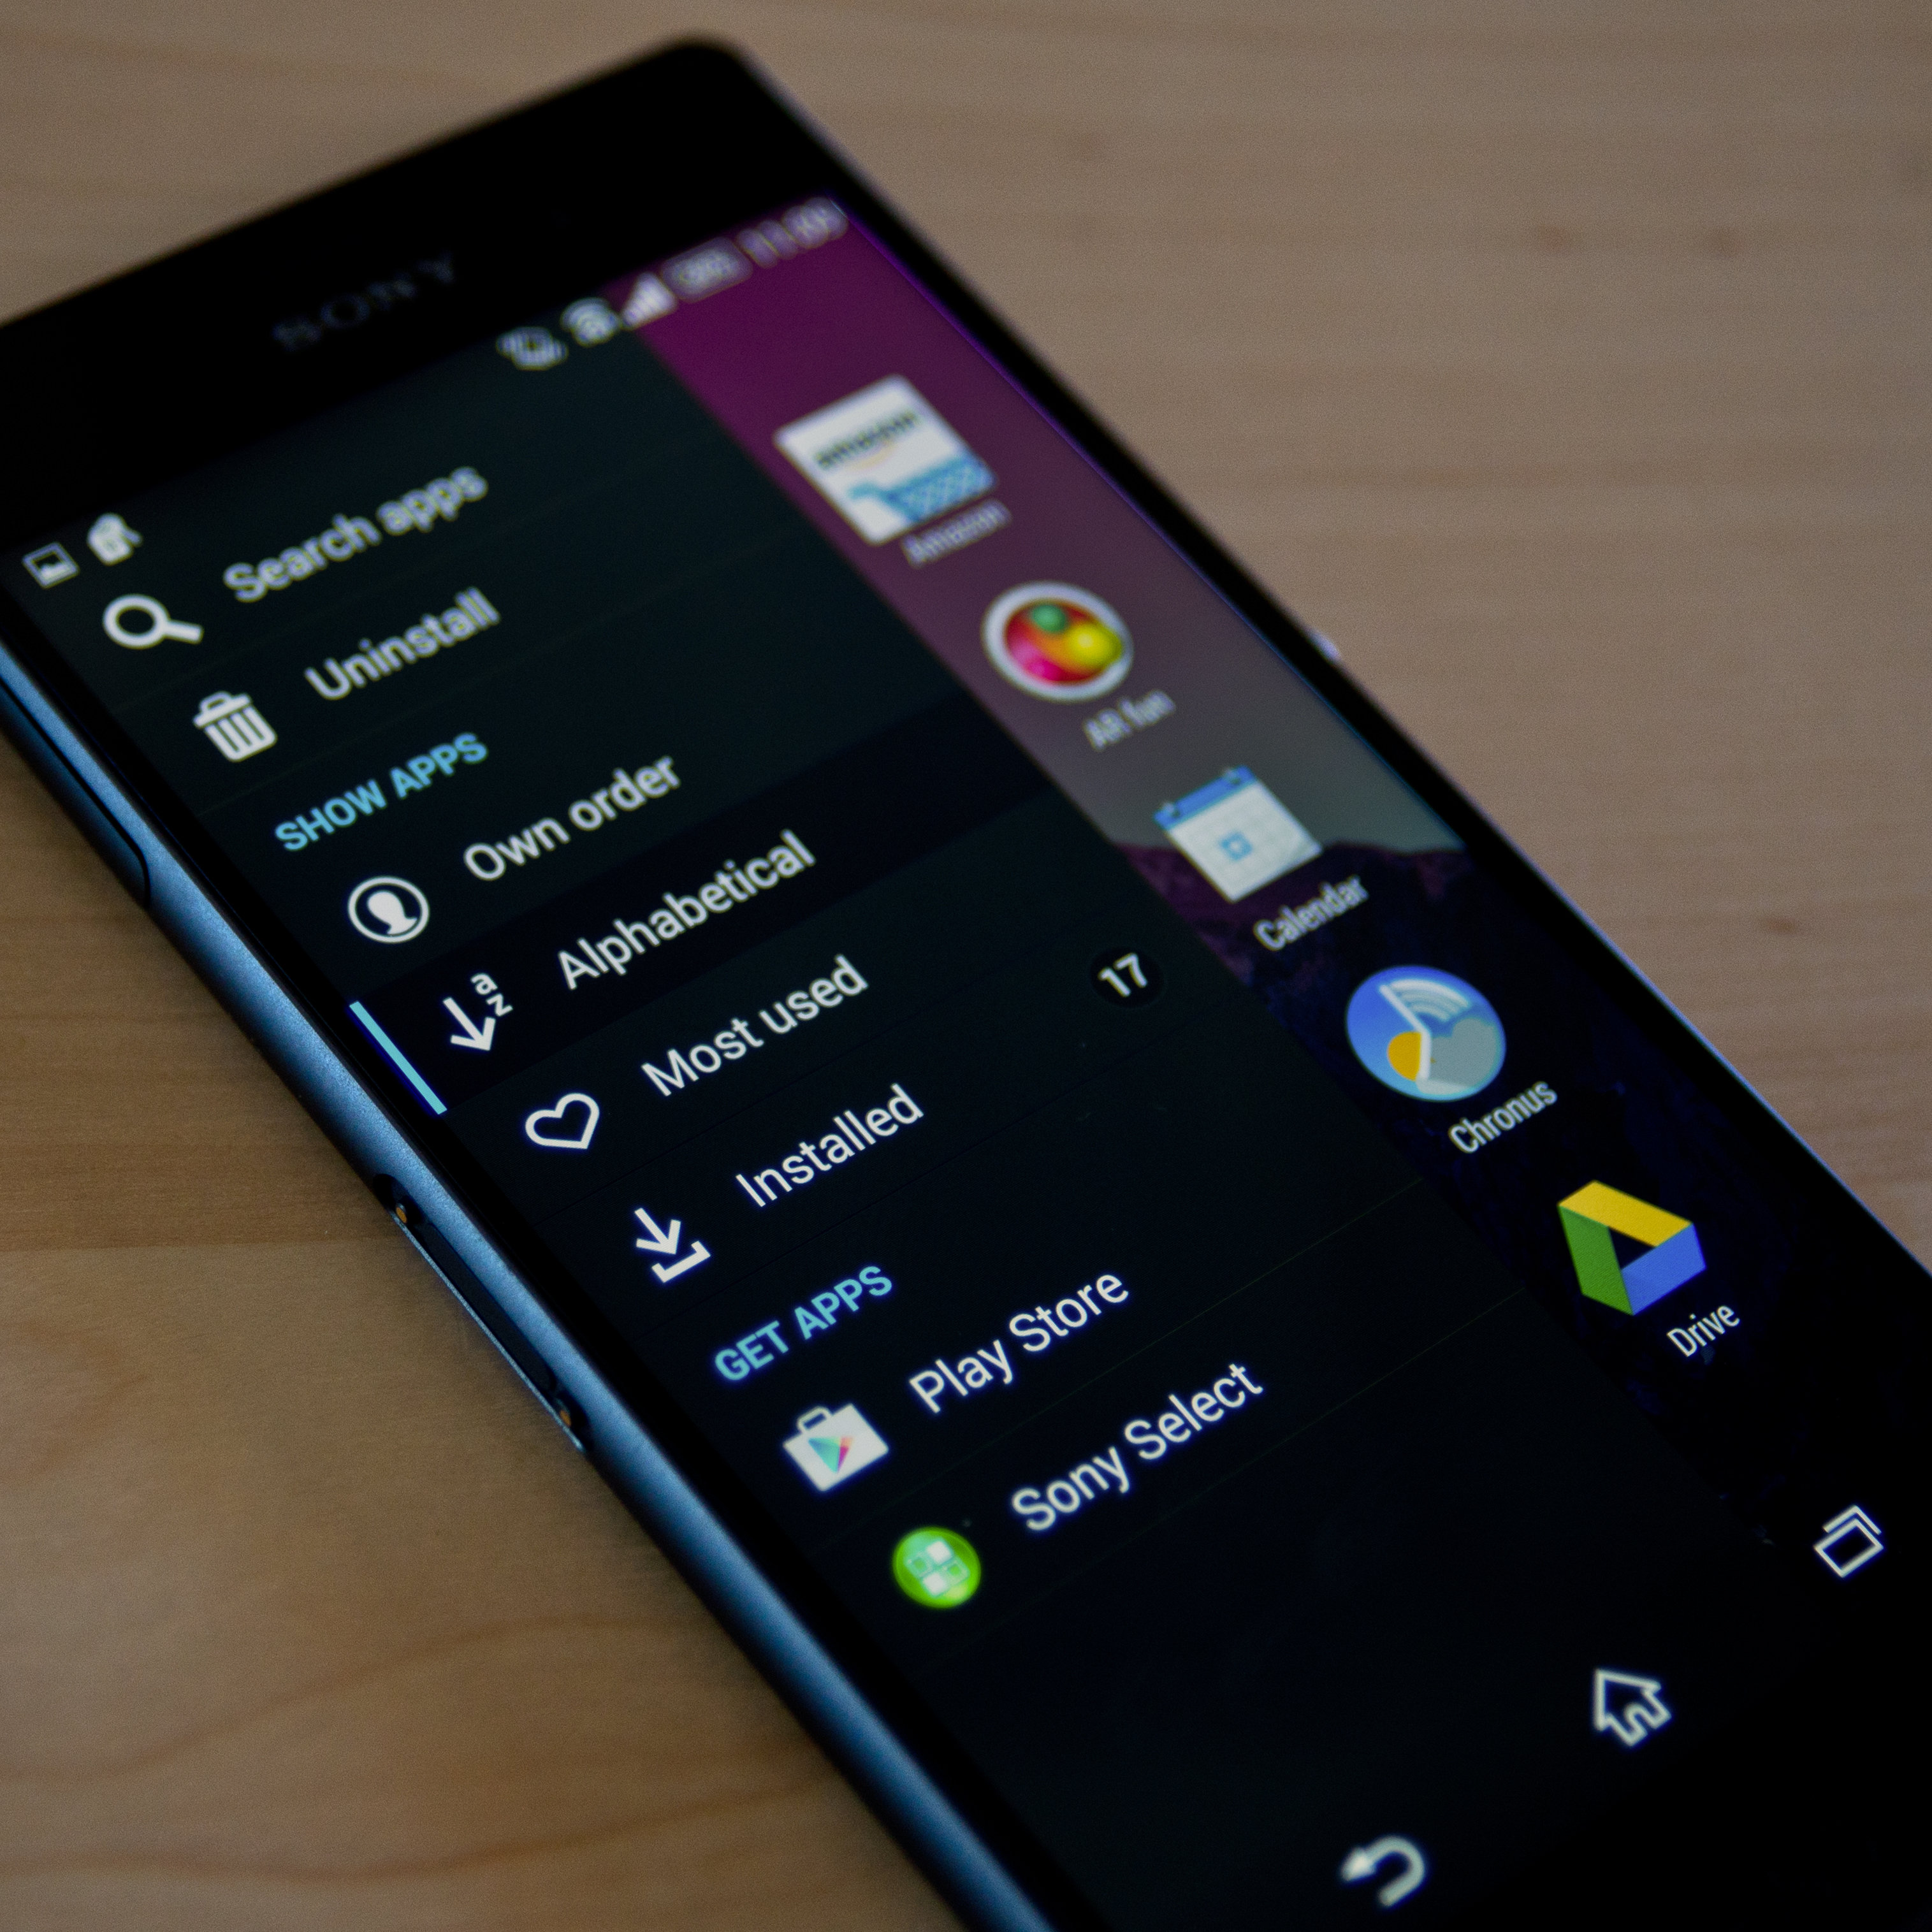 A photograph of the Sony Xperia Z3's app drawer menu.